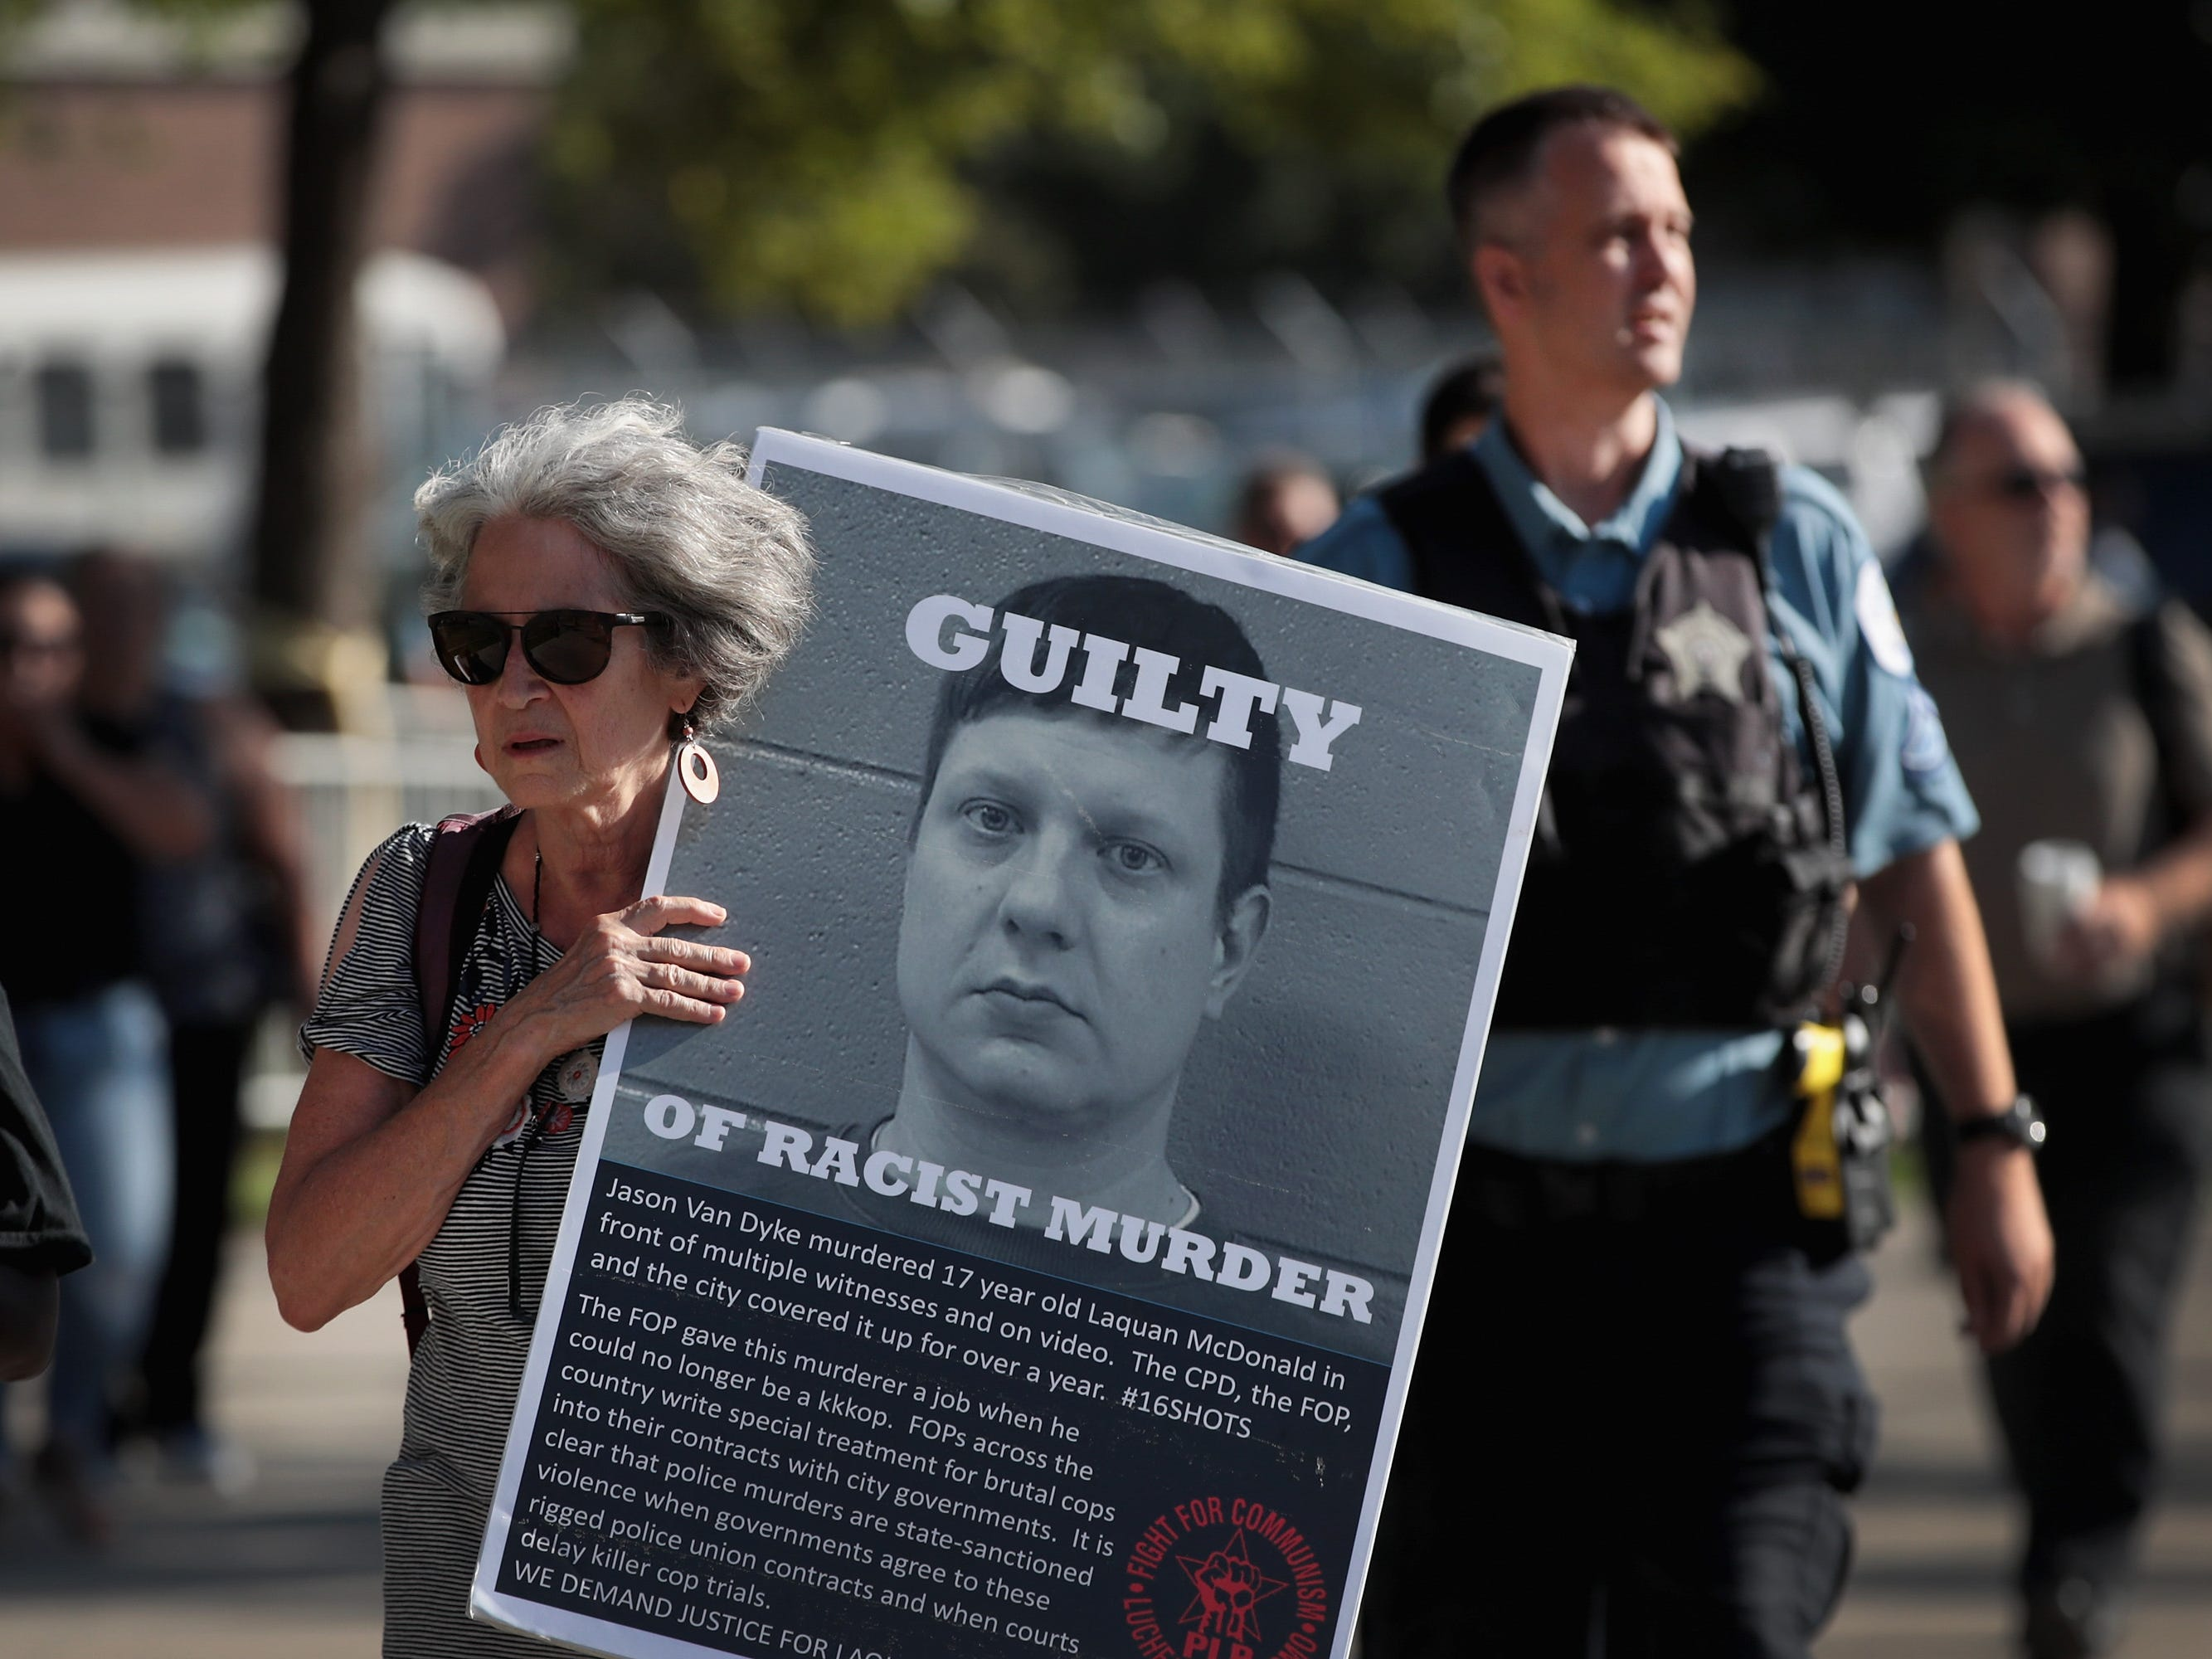 Demonstrators protest outside of the Leighton Criminal Courts Building as Jury selection begins in the murder trial for Chicago police officer Jason Van Dyke on Sept. 5, 2018 in Chicago. Van Dyke is accused of shooting 17-year-old Laquan McDonald 16 times and killing him on Oct. 20, 2014. Protests erupted around the city after video of the shooting was released.